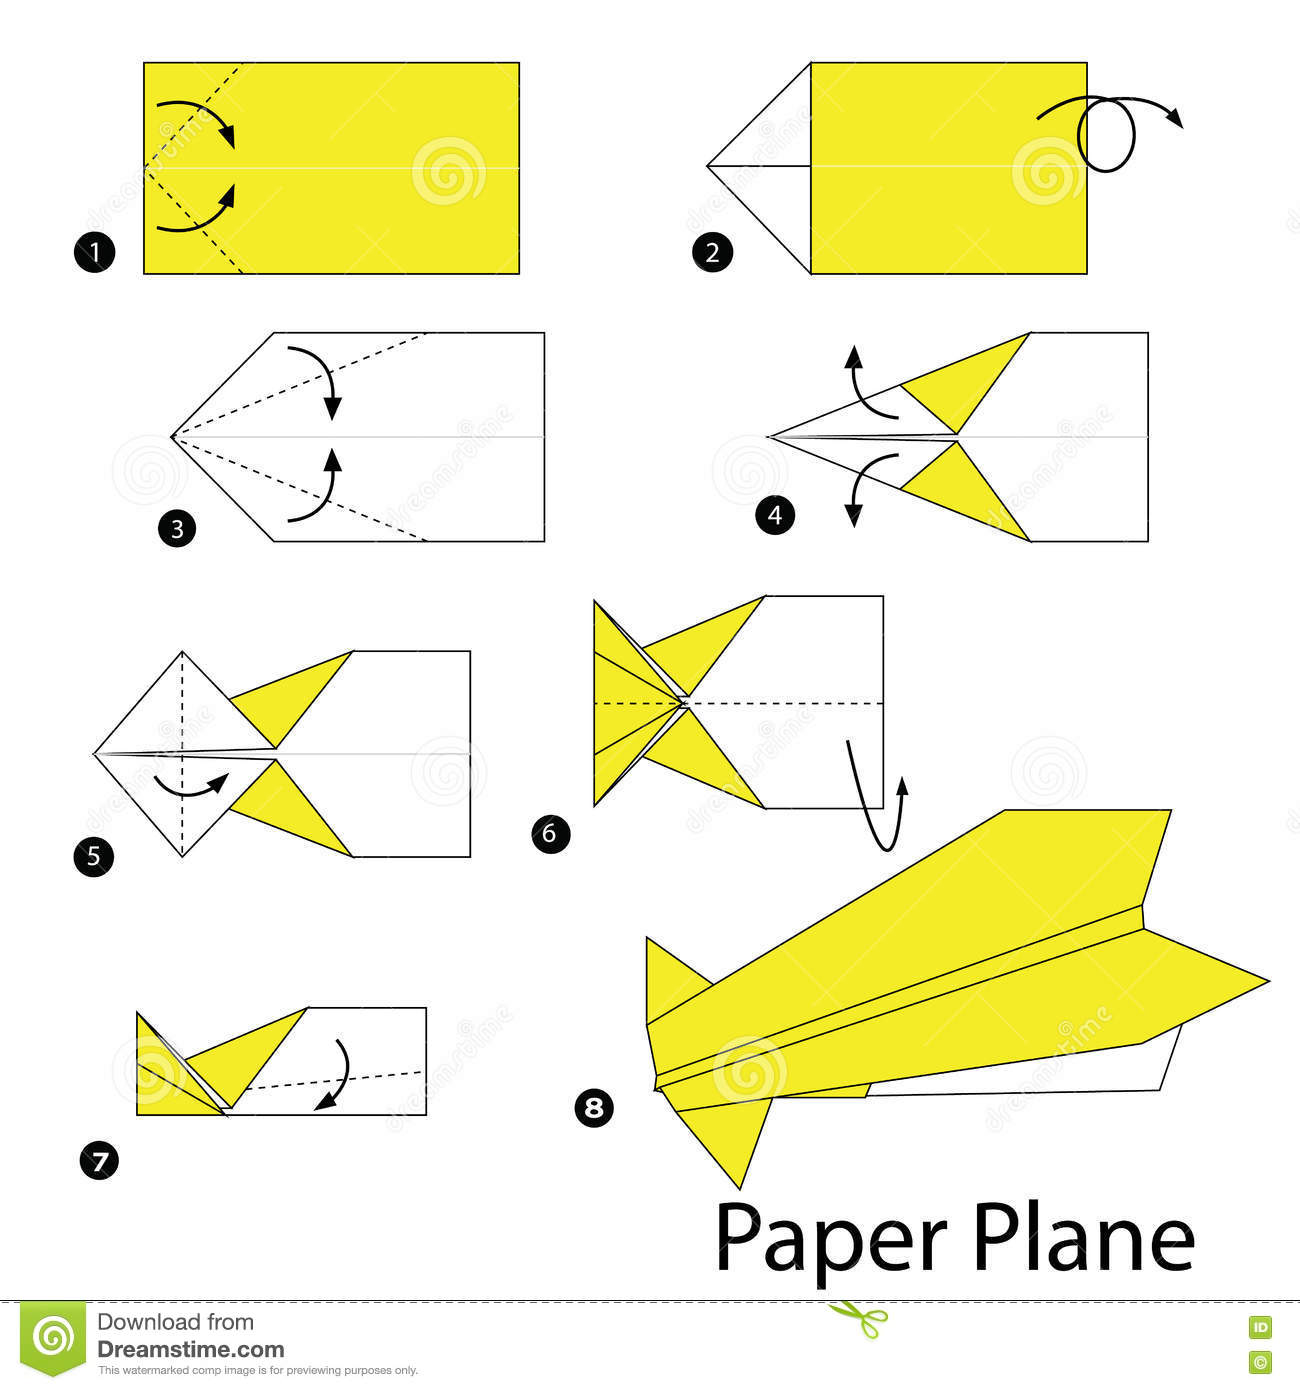 easy step by step instructions